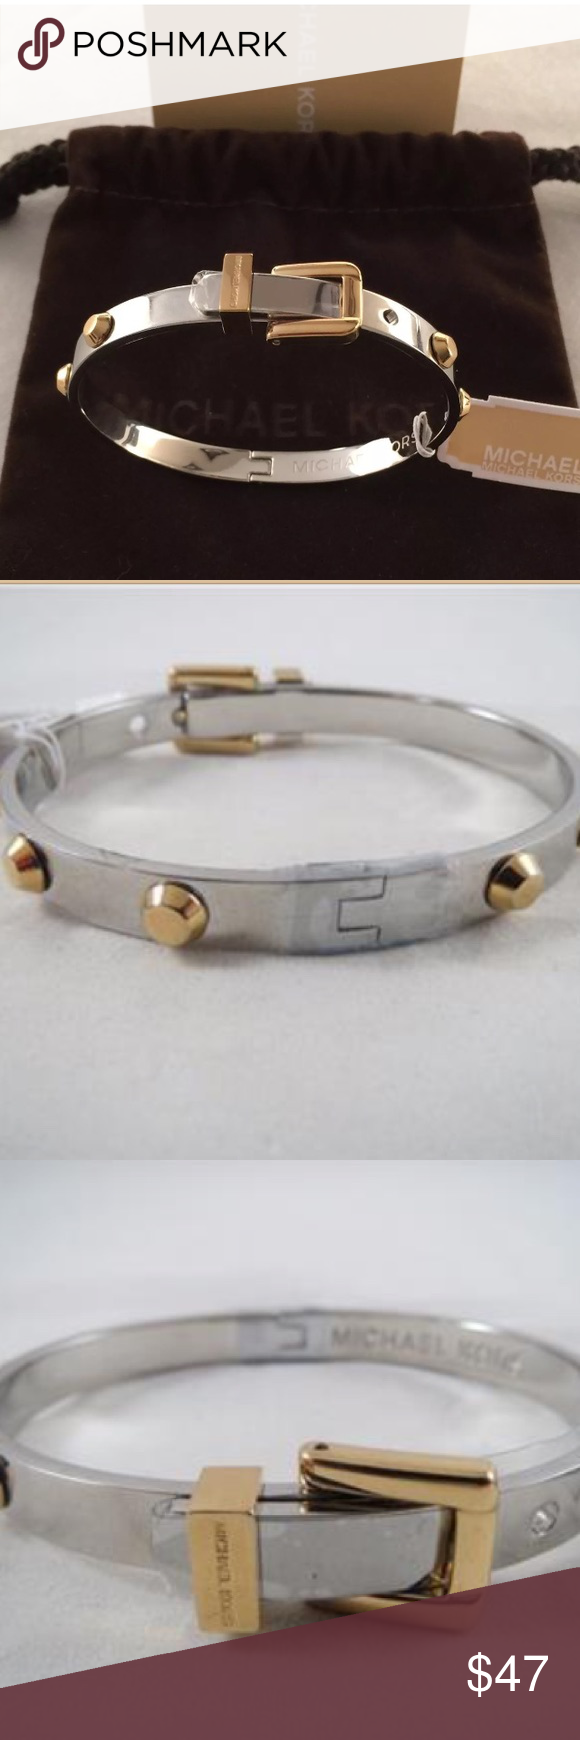 🆕 Michael Kors Bracelet New with tags Michael Kors women's bracelet. Silver tone with gold tone studs. 100% authentic. Includes original MK pouch bag and care instructions. Michael Kors Jewelry Bracelets